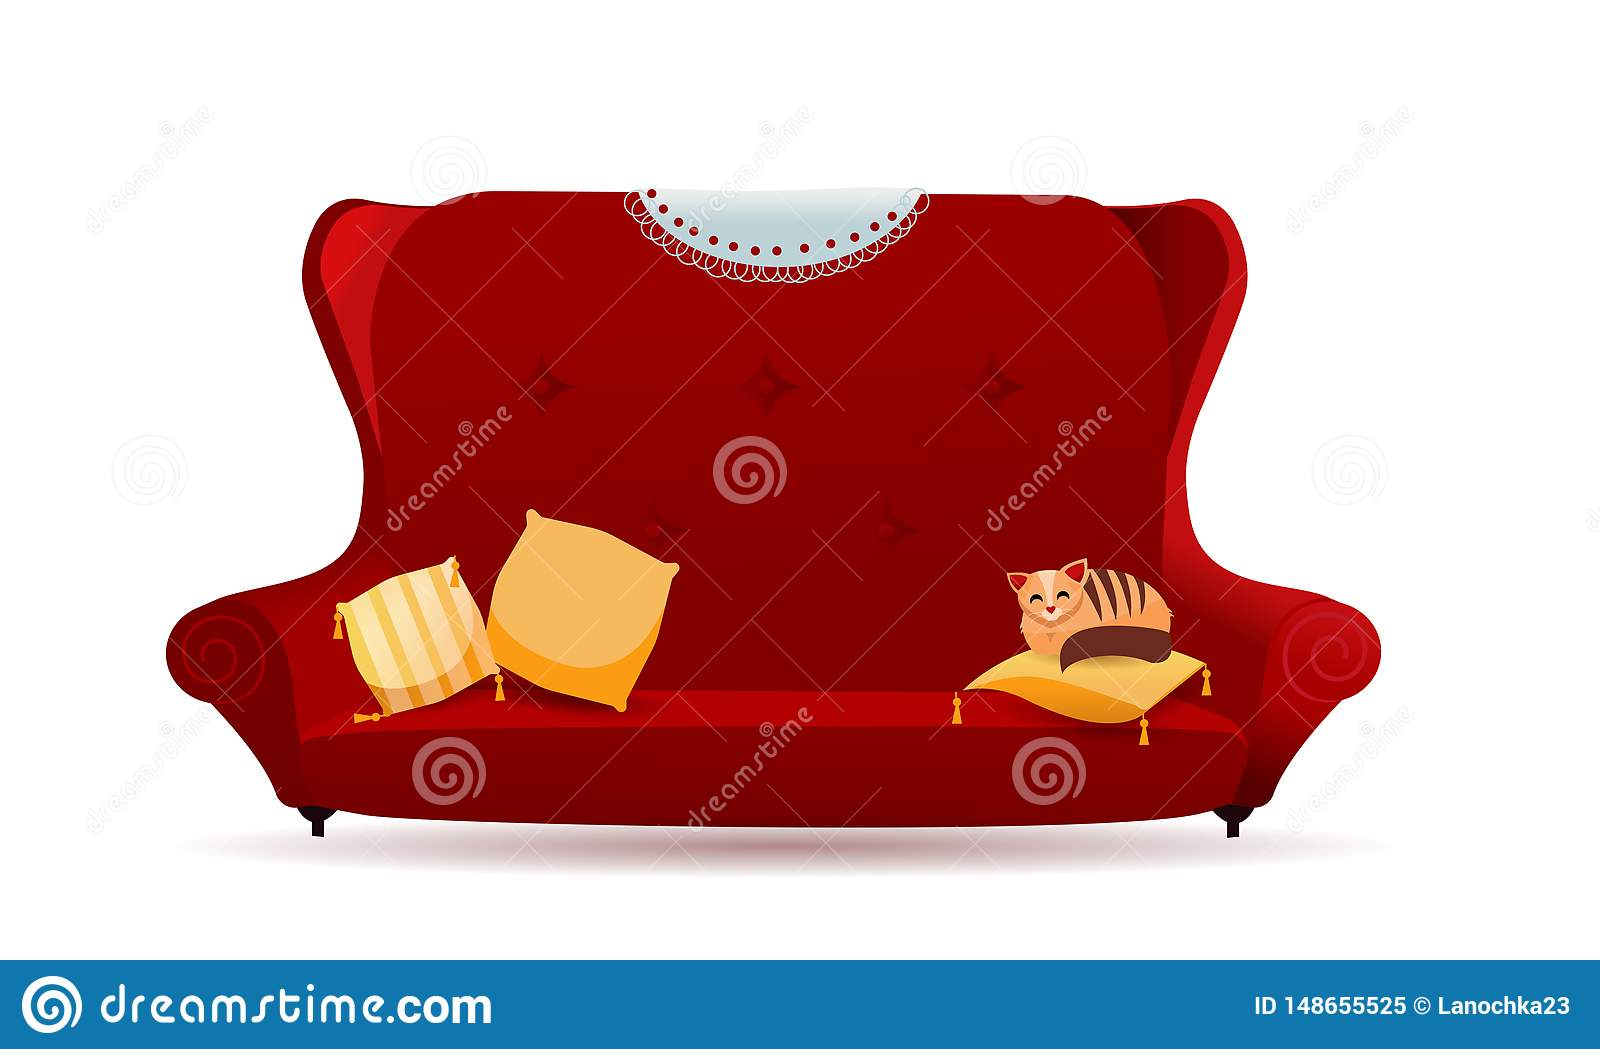 Incredible Big Red Velvet Sofa With Yellow Pillows And Cat Cozy Forskolin Free Trial Chair Design Images Forskolin Free Trialorg